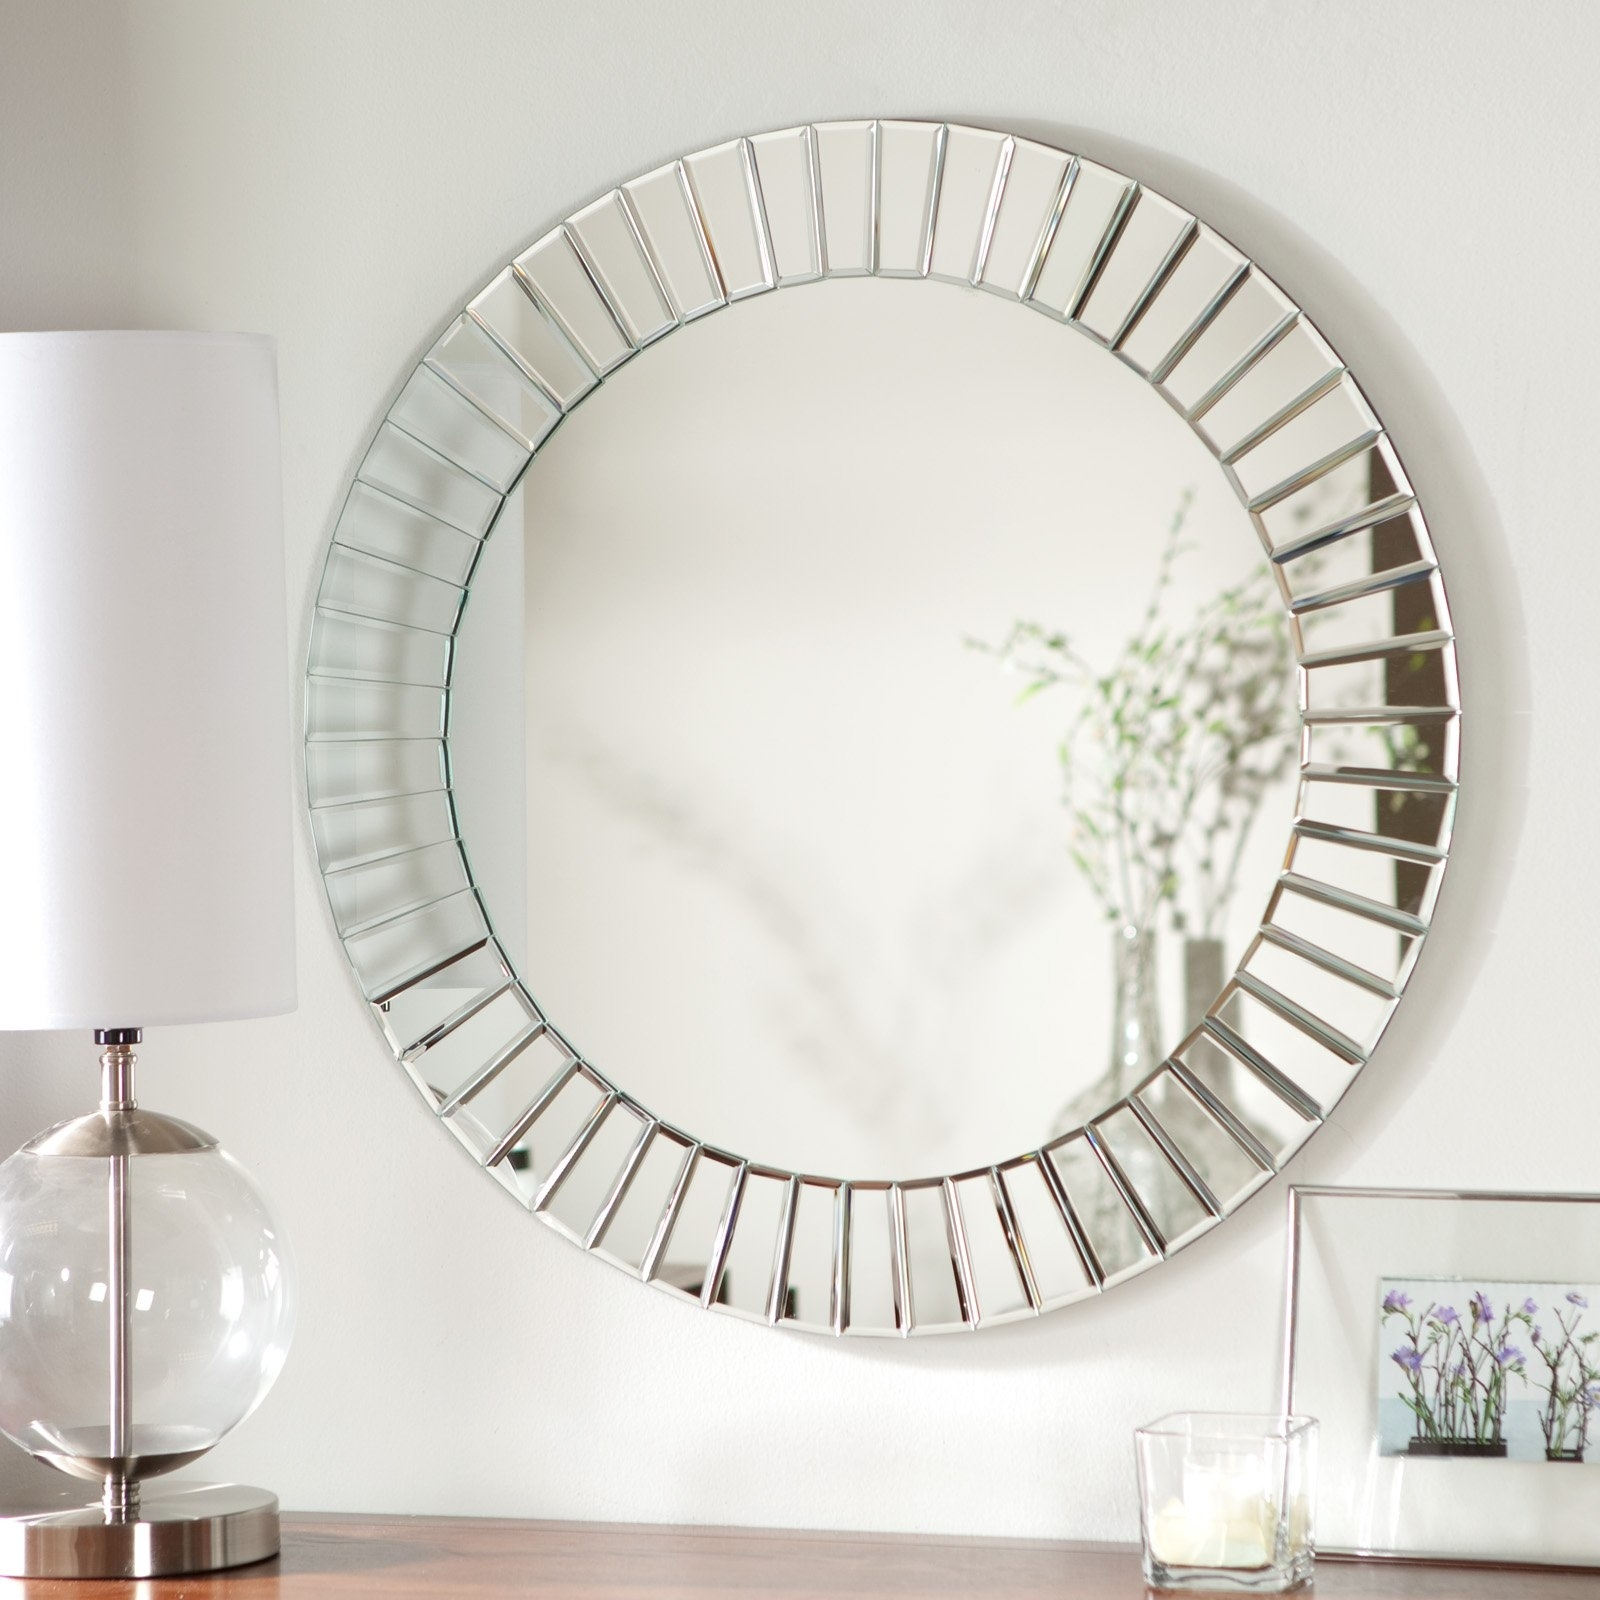 Beautiful Decorative Mirrors For Including Bathroom Ideas Images Intended For Small Mirrors For Sale (Image 5 of 15)